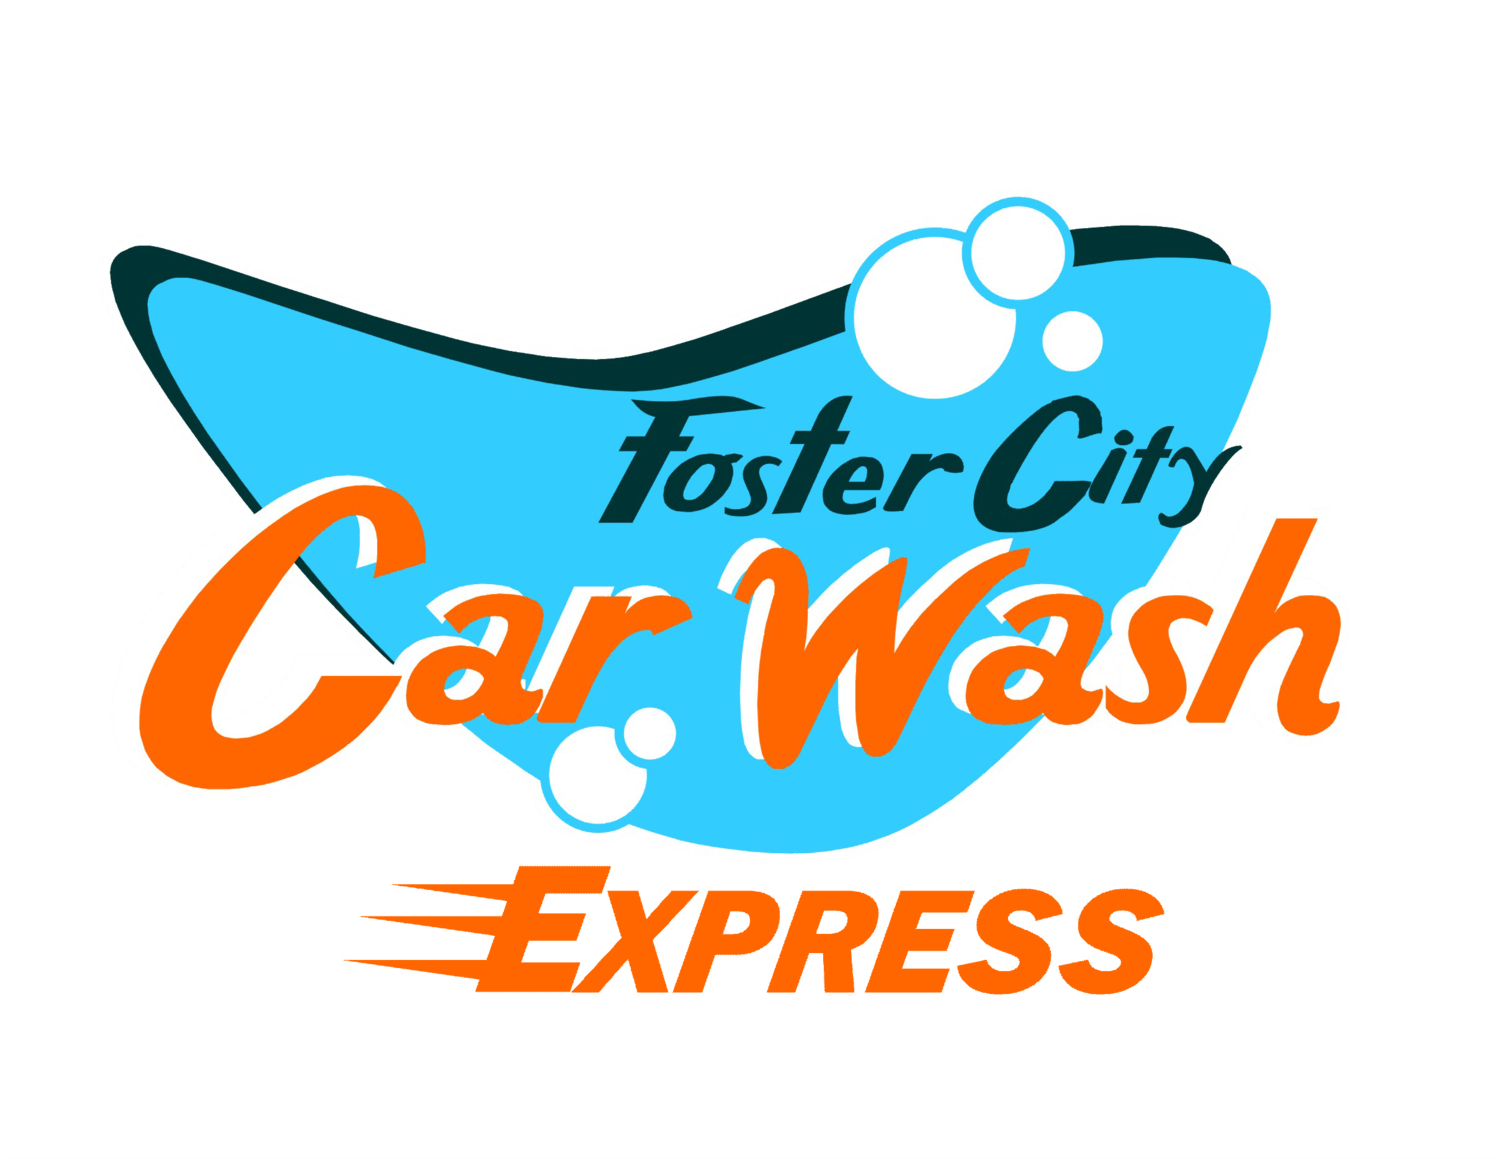 Foster City Express Car Wash